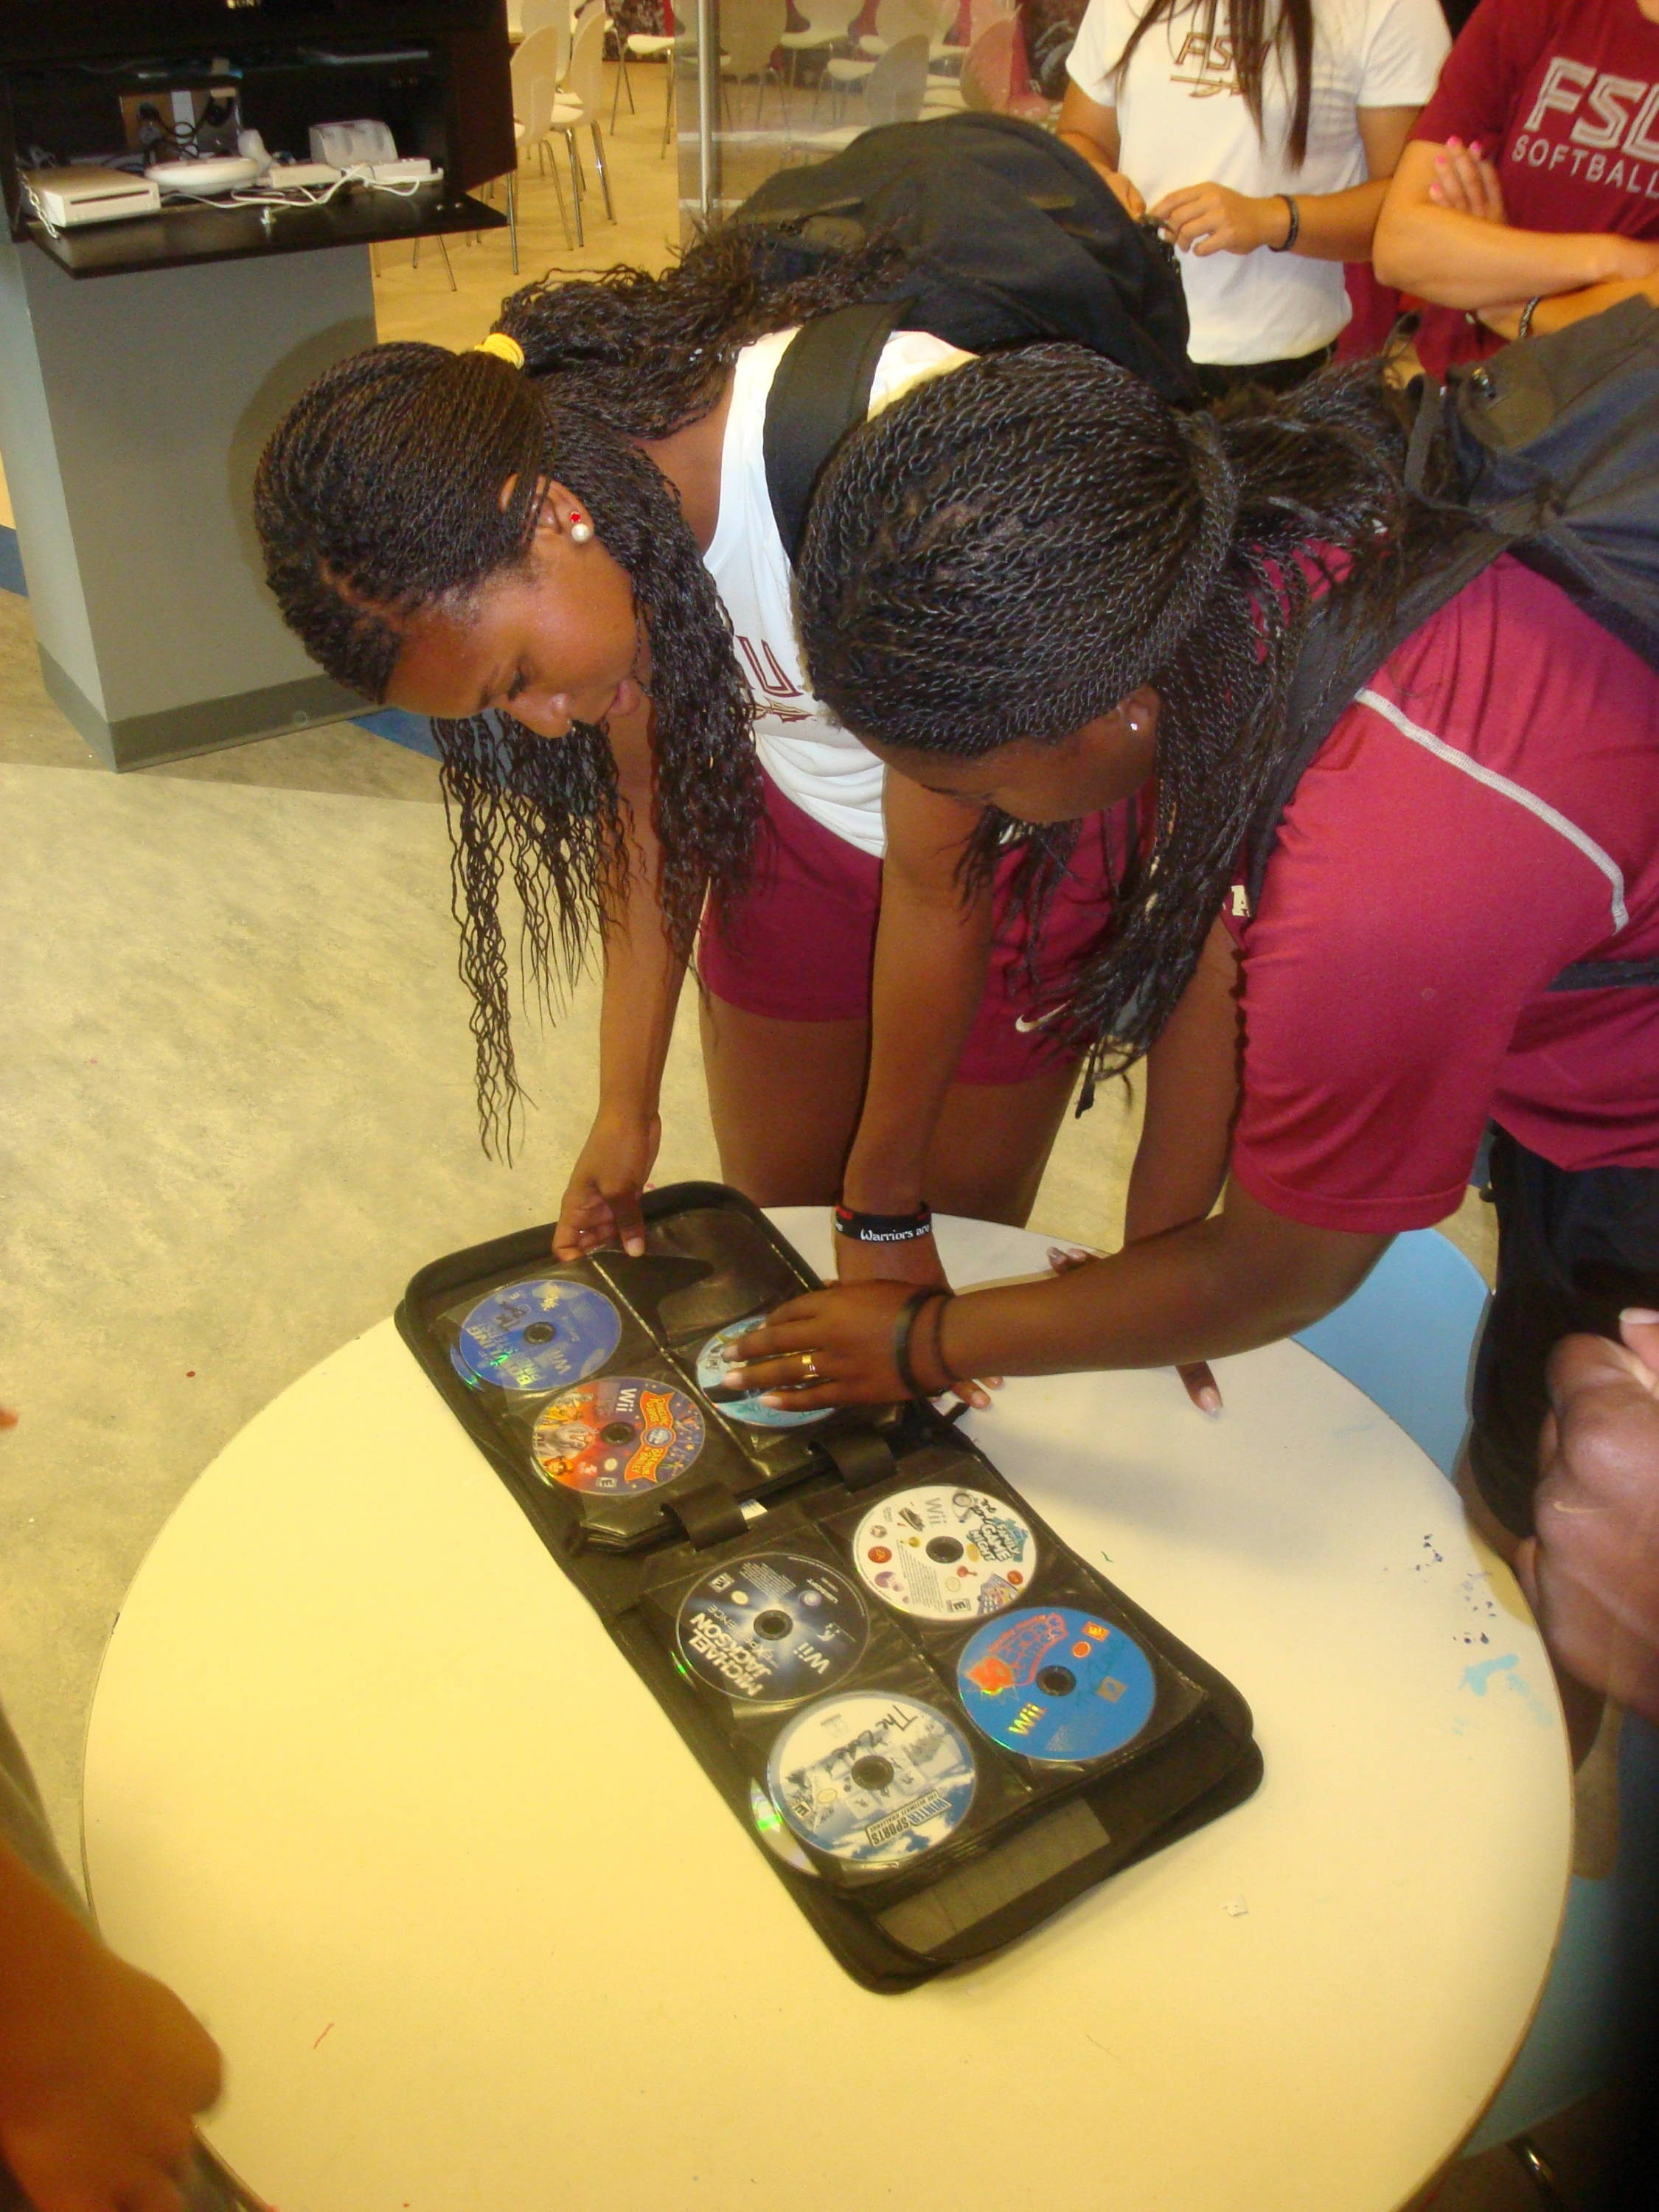 Tiffani Brown and Morgan Bullock decide which Nintendo Wii games they will play with the children